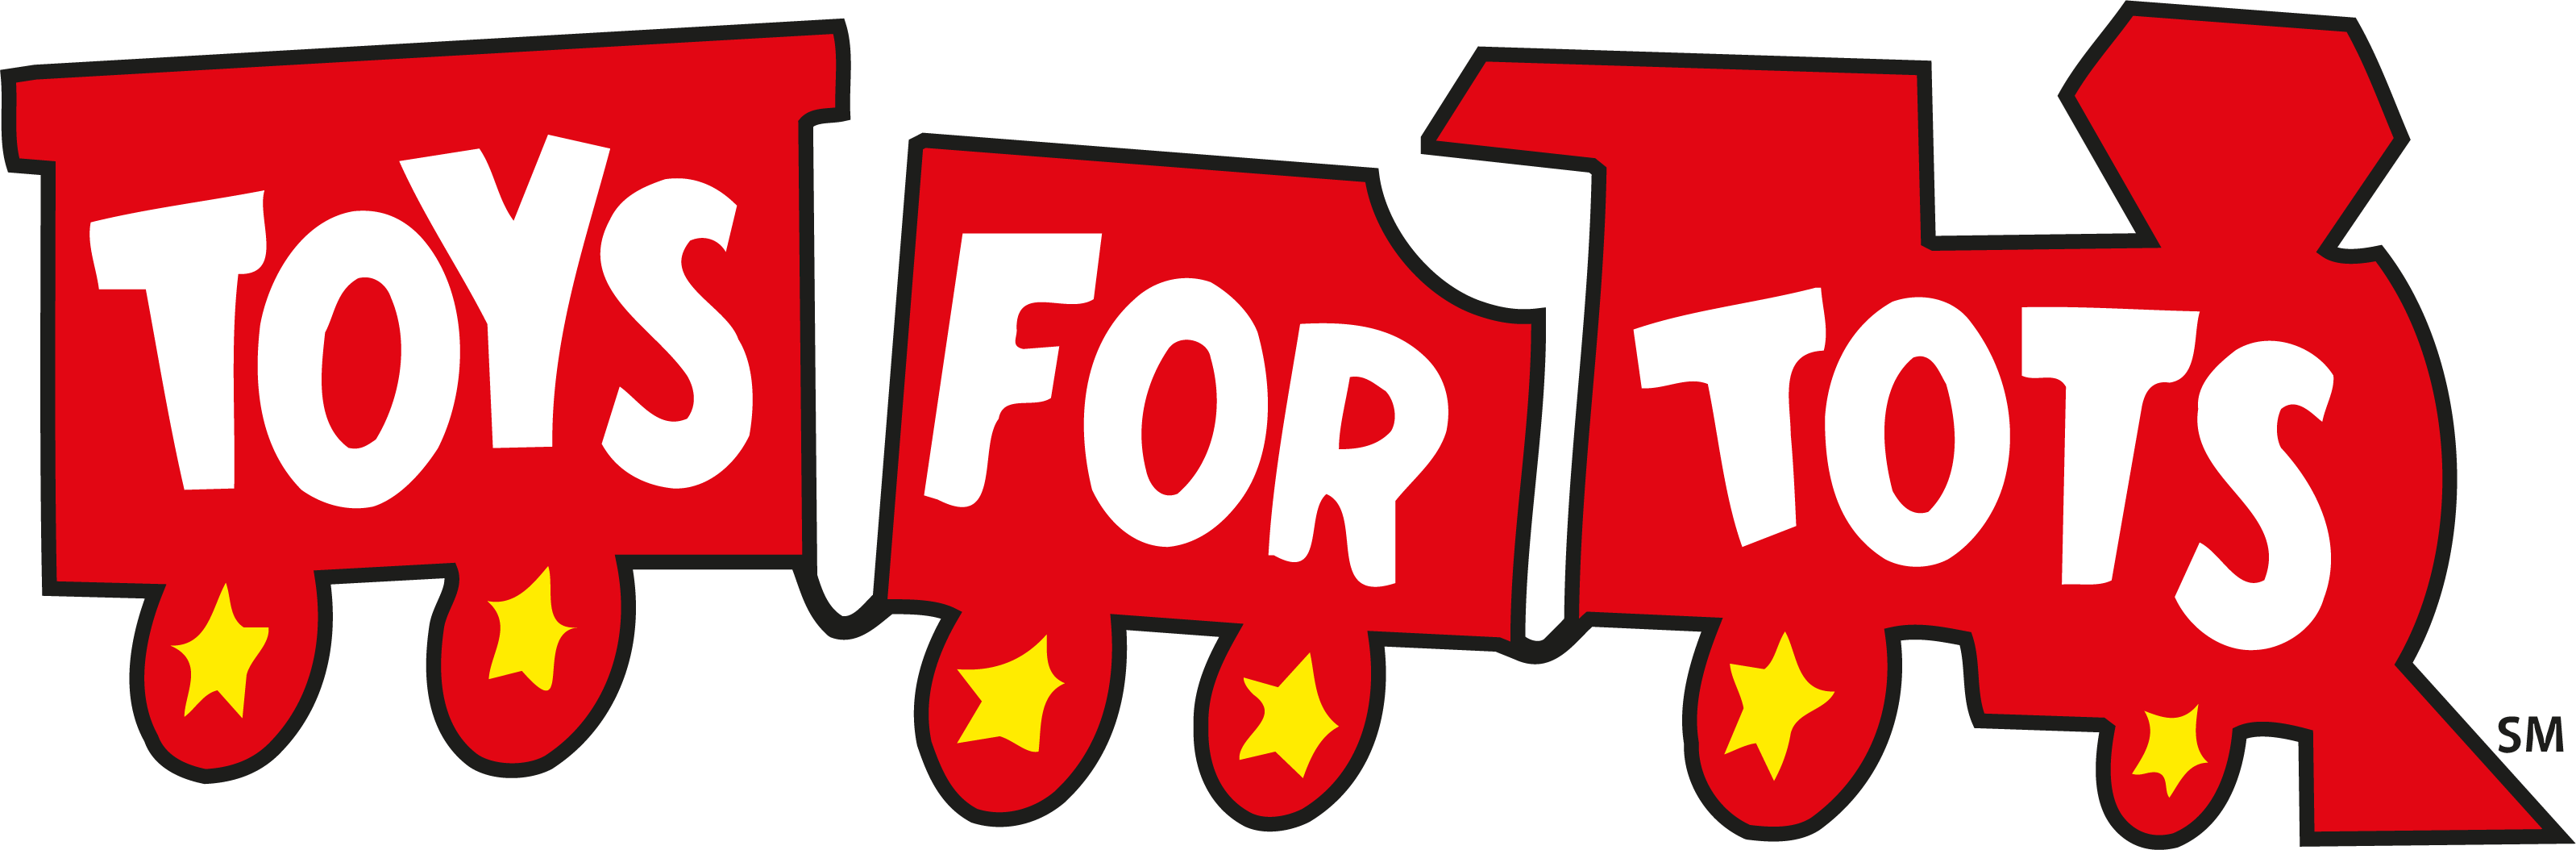 Toys Tots Logo : Events on site wyckoff ptowyckoff pto